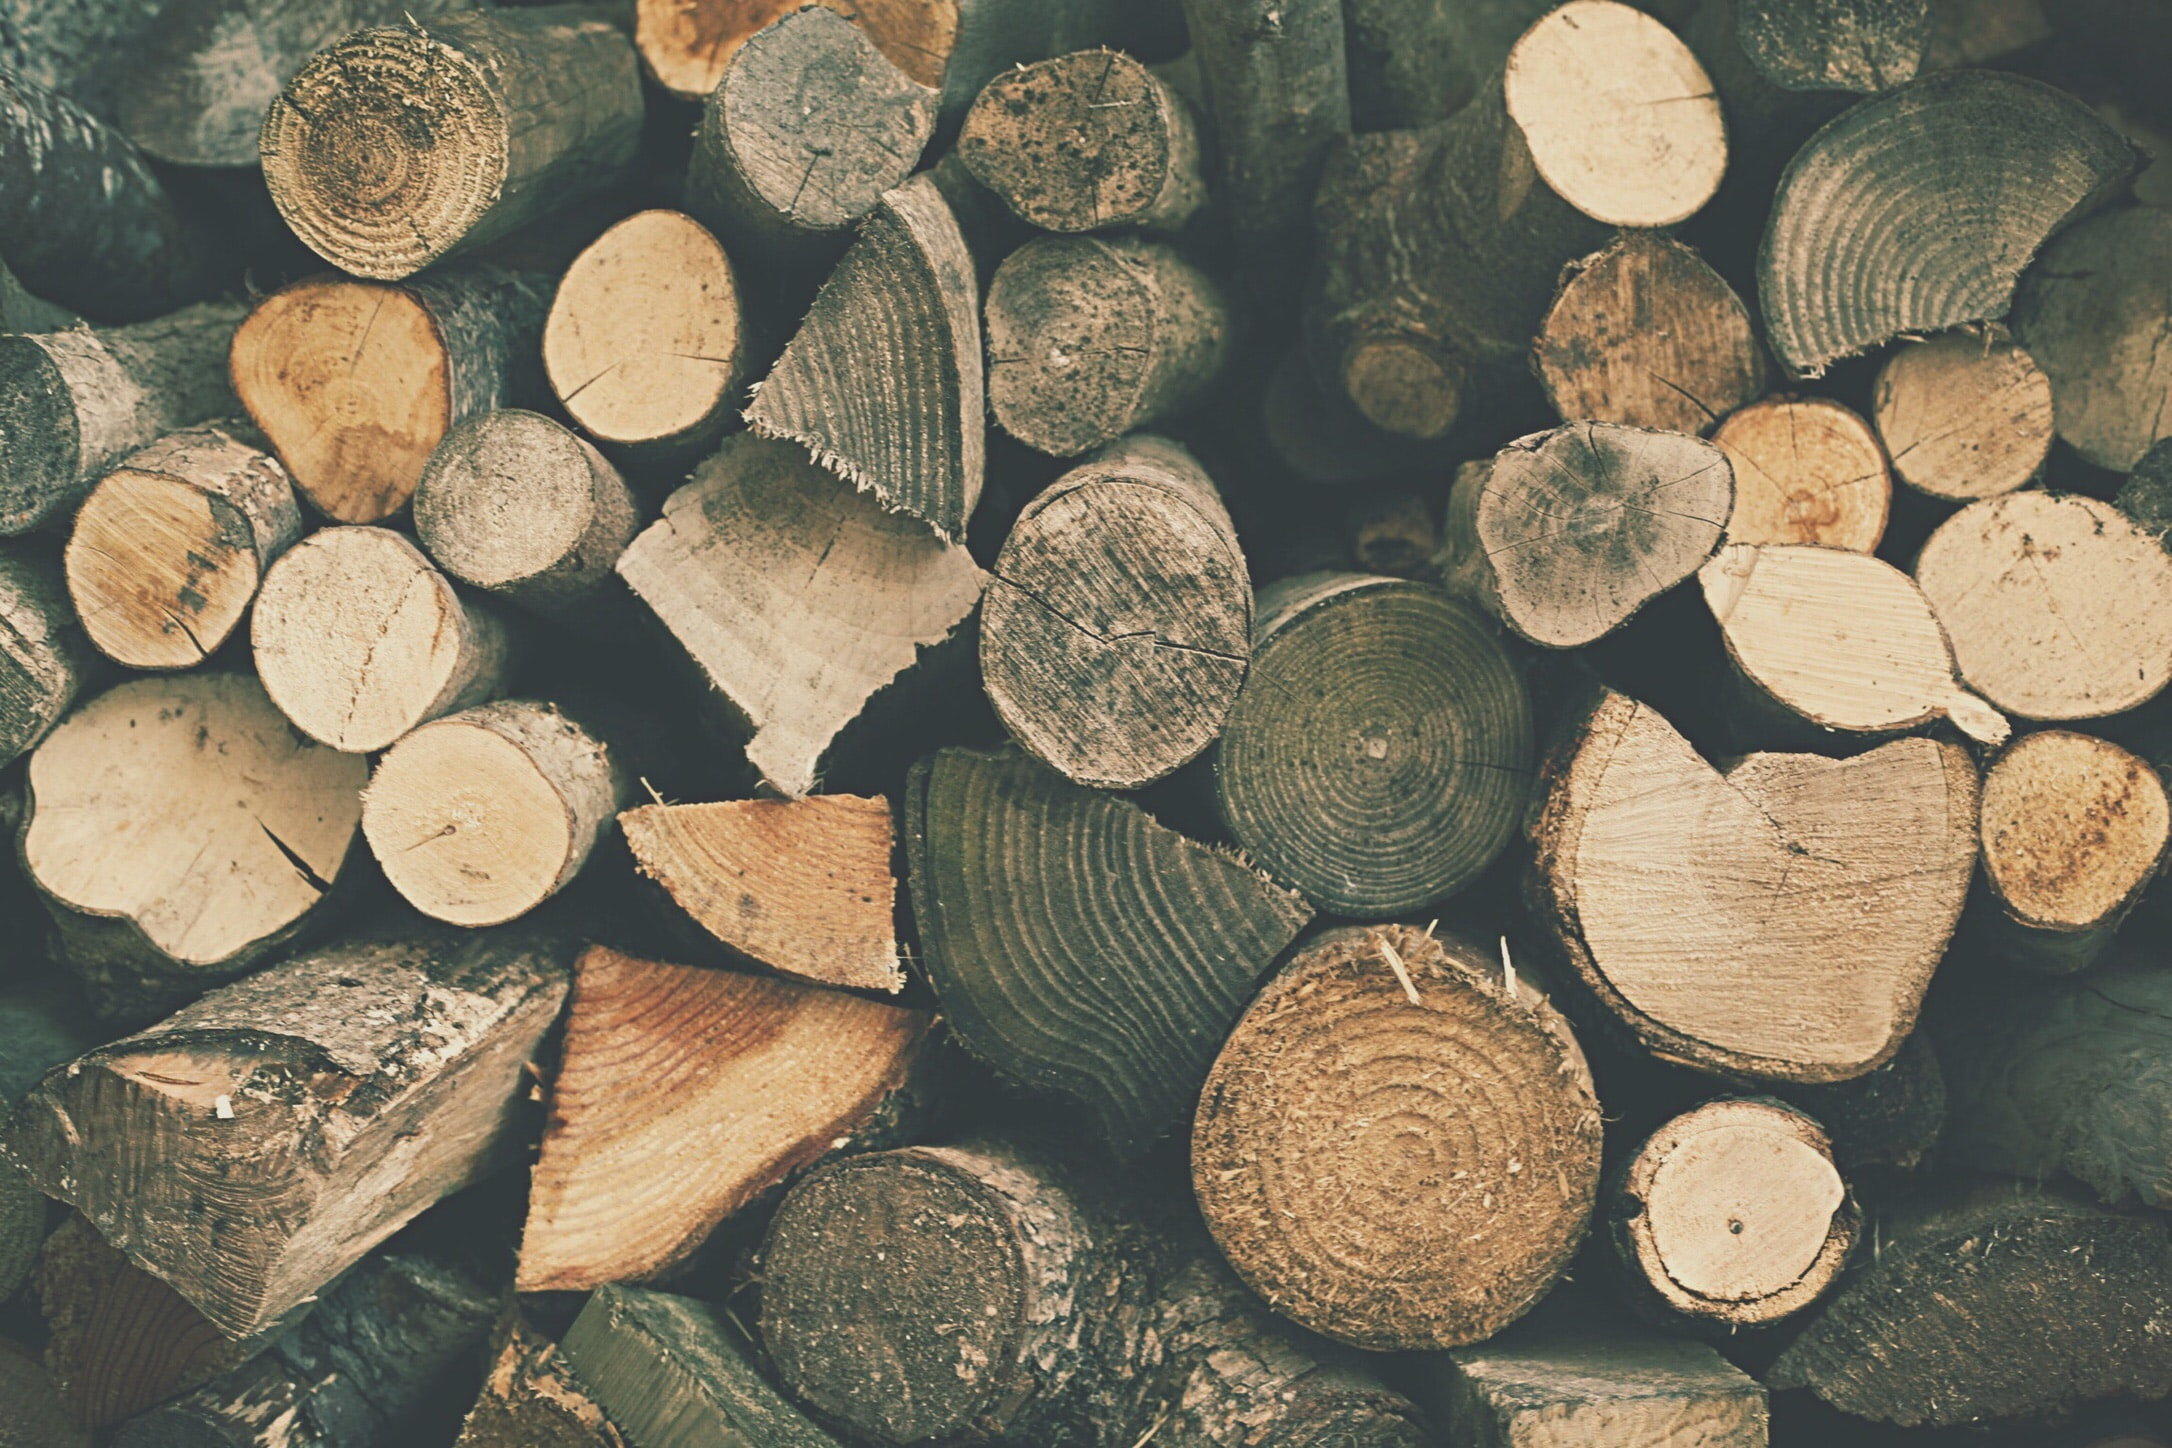 A stack of cut logs in various sizes and shapes